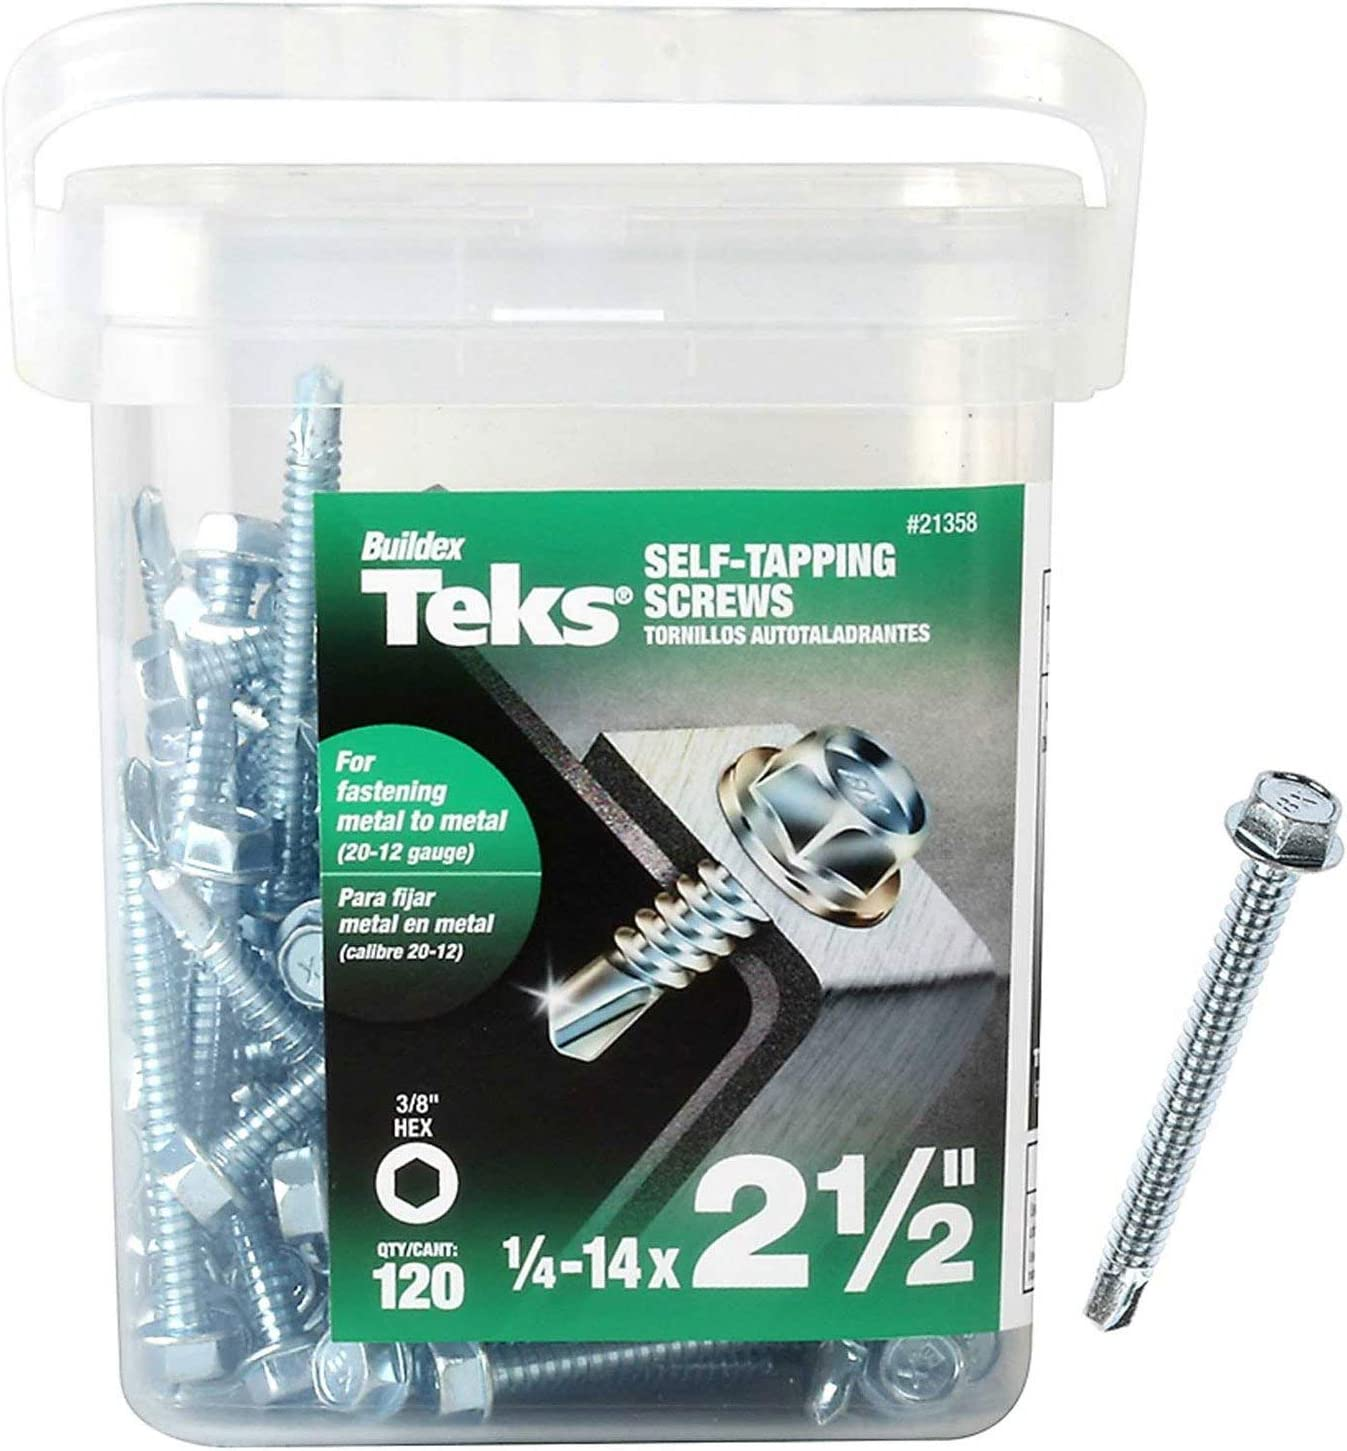 1//2-13 Thread Size 2 Length 1//2-13 Thread Size 2 Length Small Parts 5032FWS Steel Thread Cutting Screw Type F Zinc Plated Finish Serrated Hex Washer Head